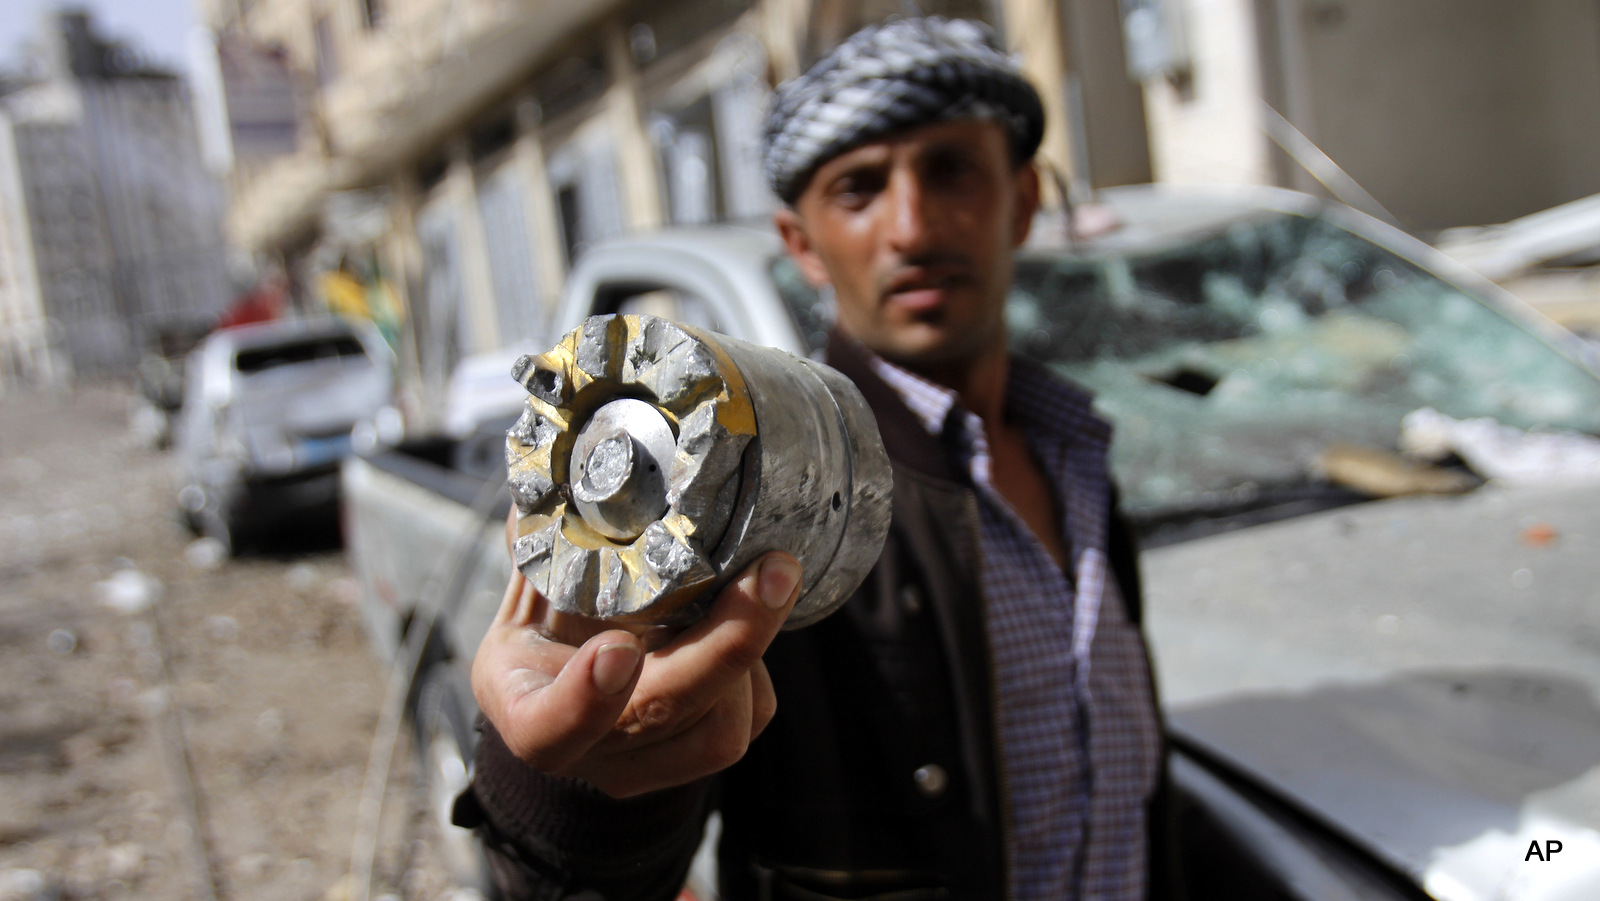 A man holds a cluster comb fragment after a Saudi-led airstrike in Yemen's capital, Monday, April 20, 2015. (AP Photo/Hani Mohammed)